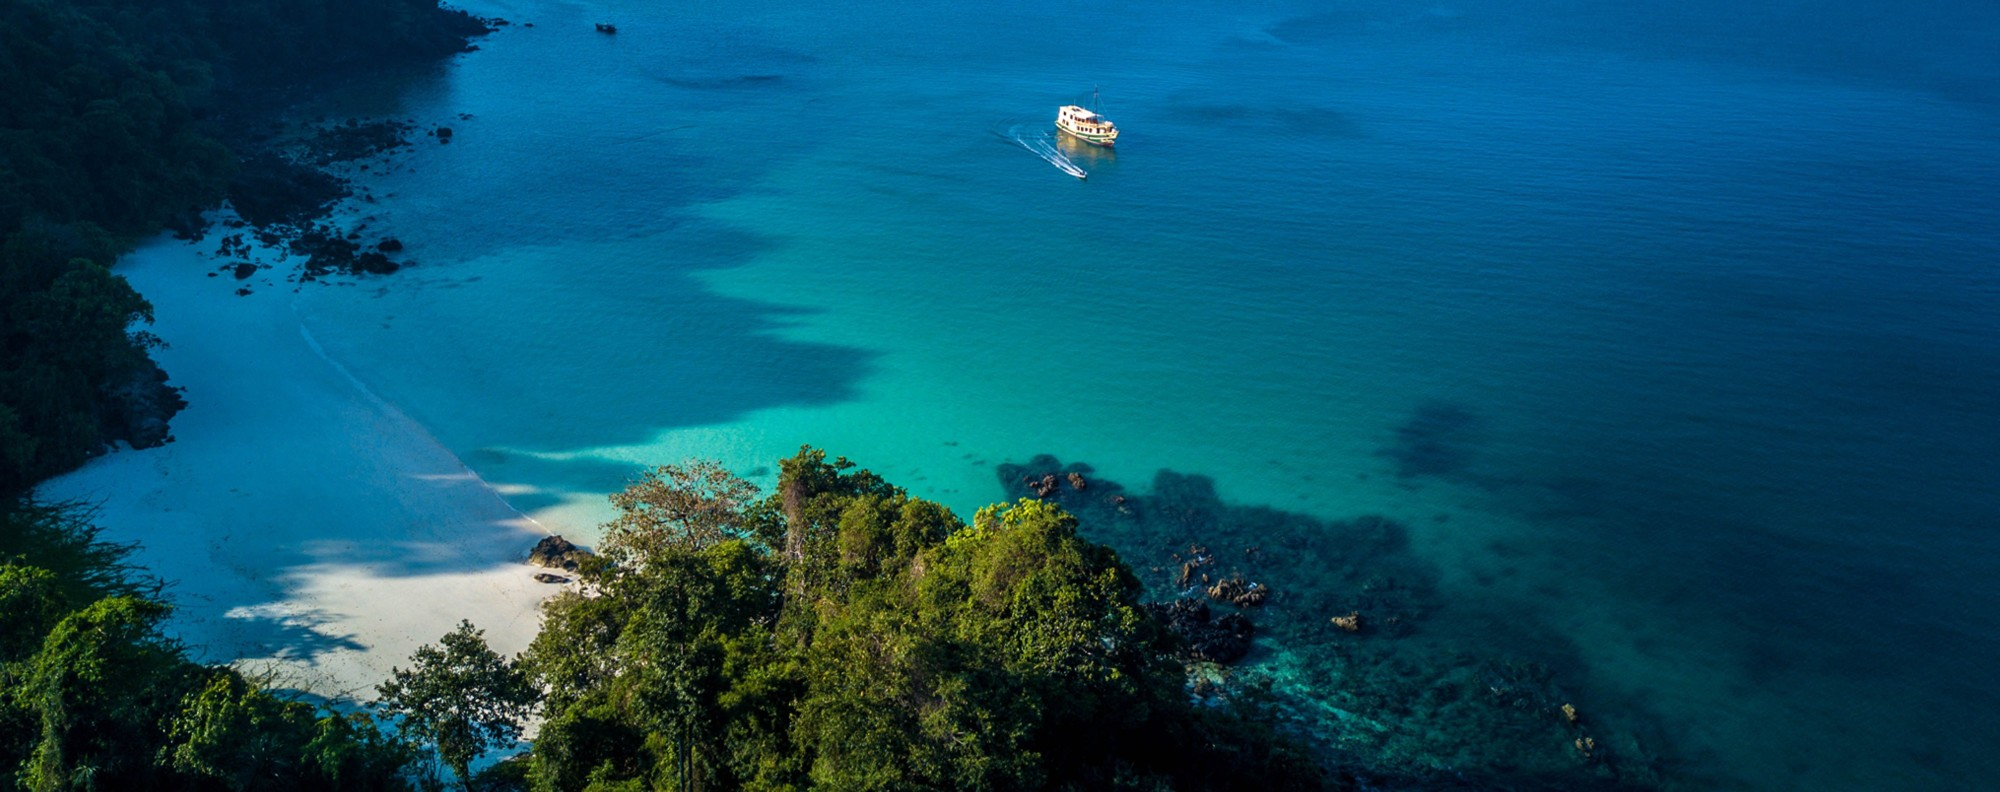 The Sea Gypsy skirts one of the Myeik islands. Picture: David Dennis